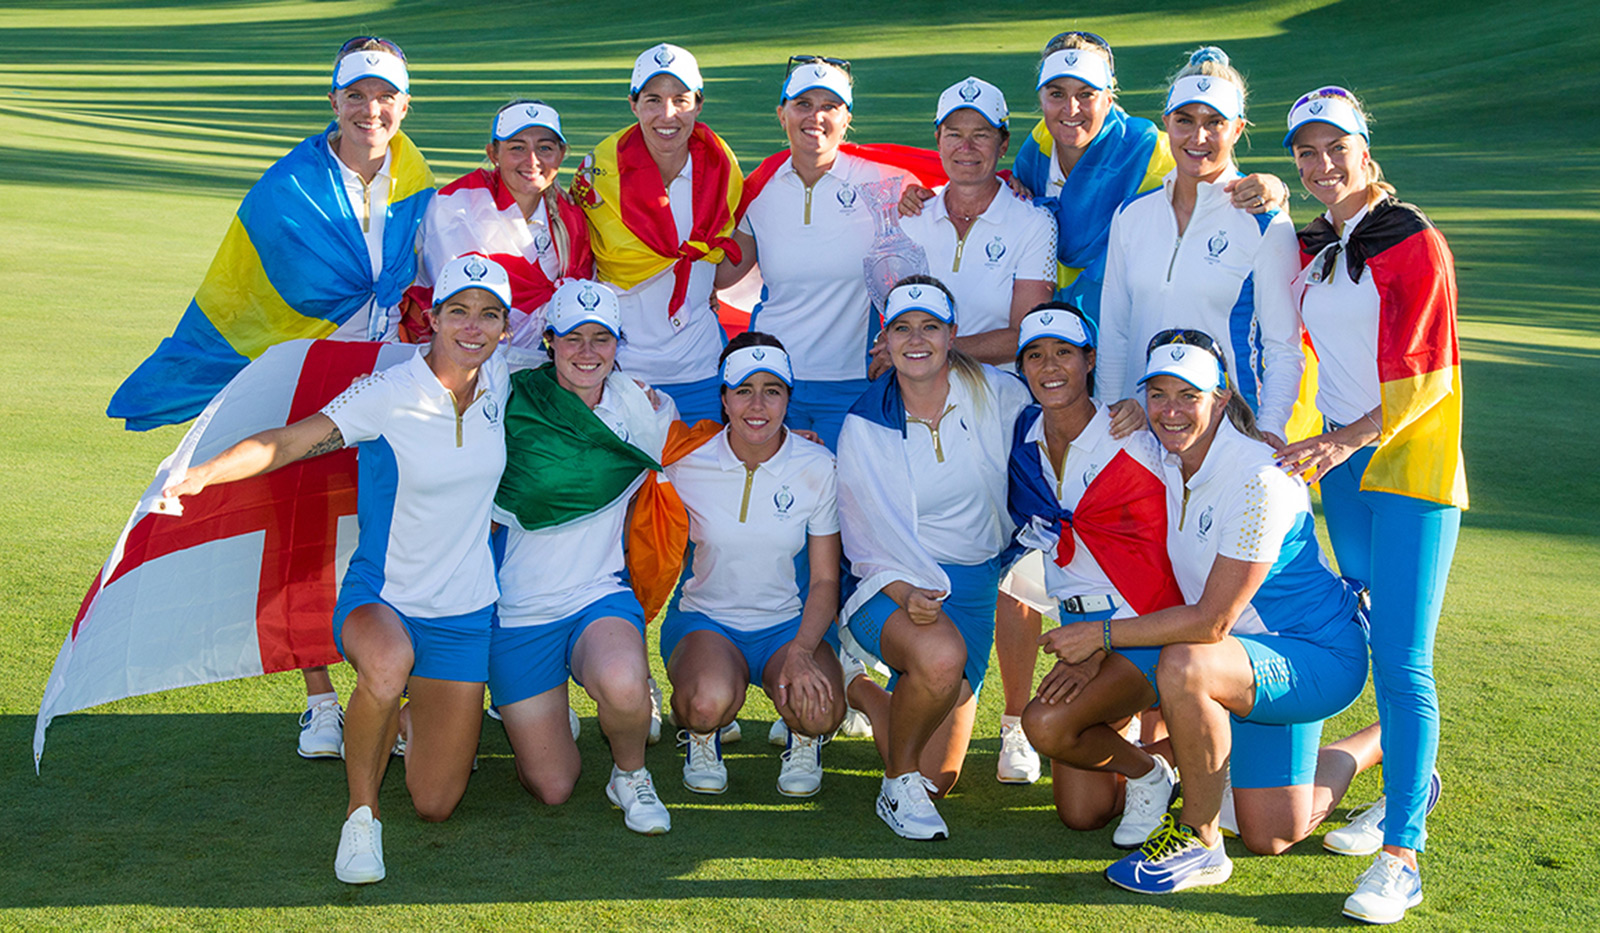 Solheim Cup 2021 Team Europe - And the winner of the solheim cup 2021 is ...